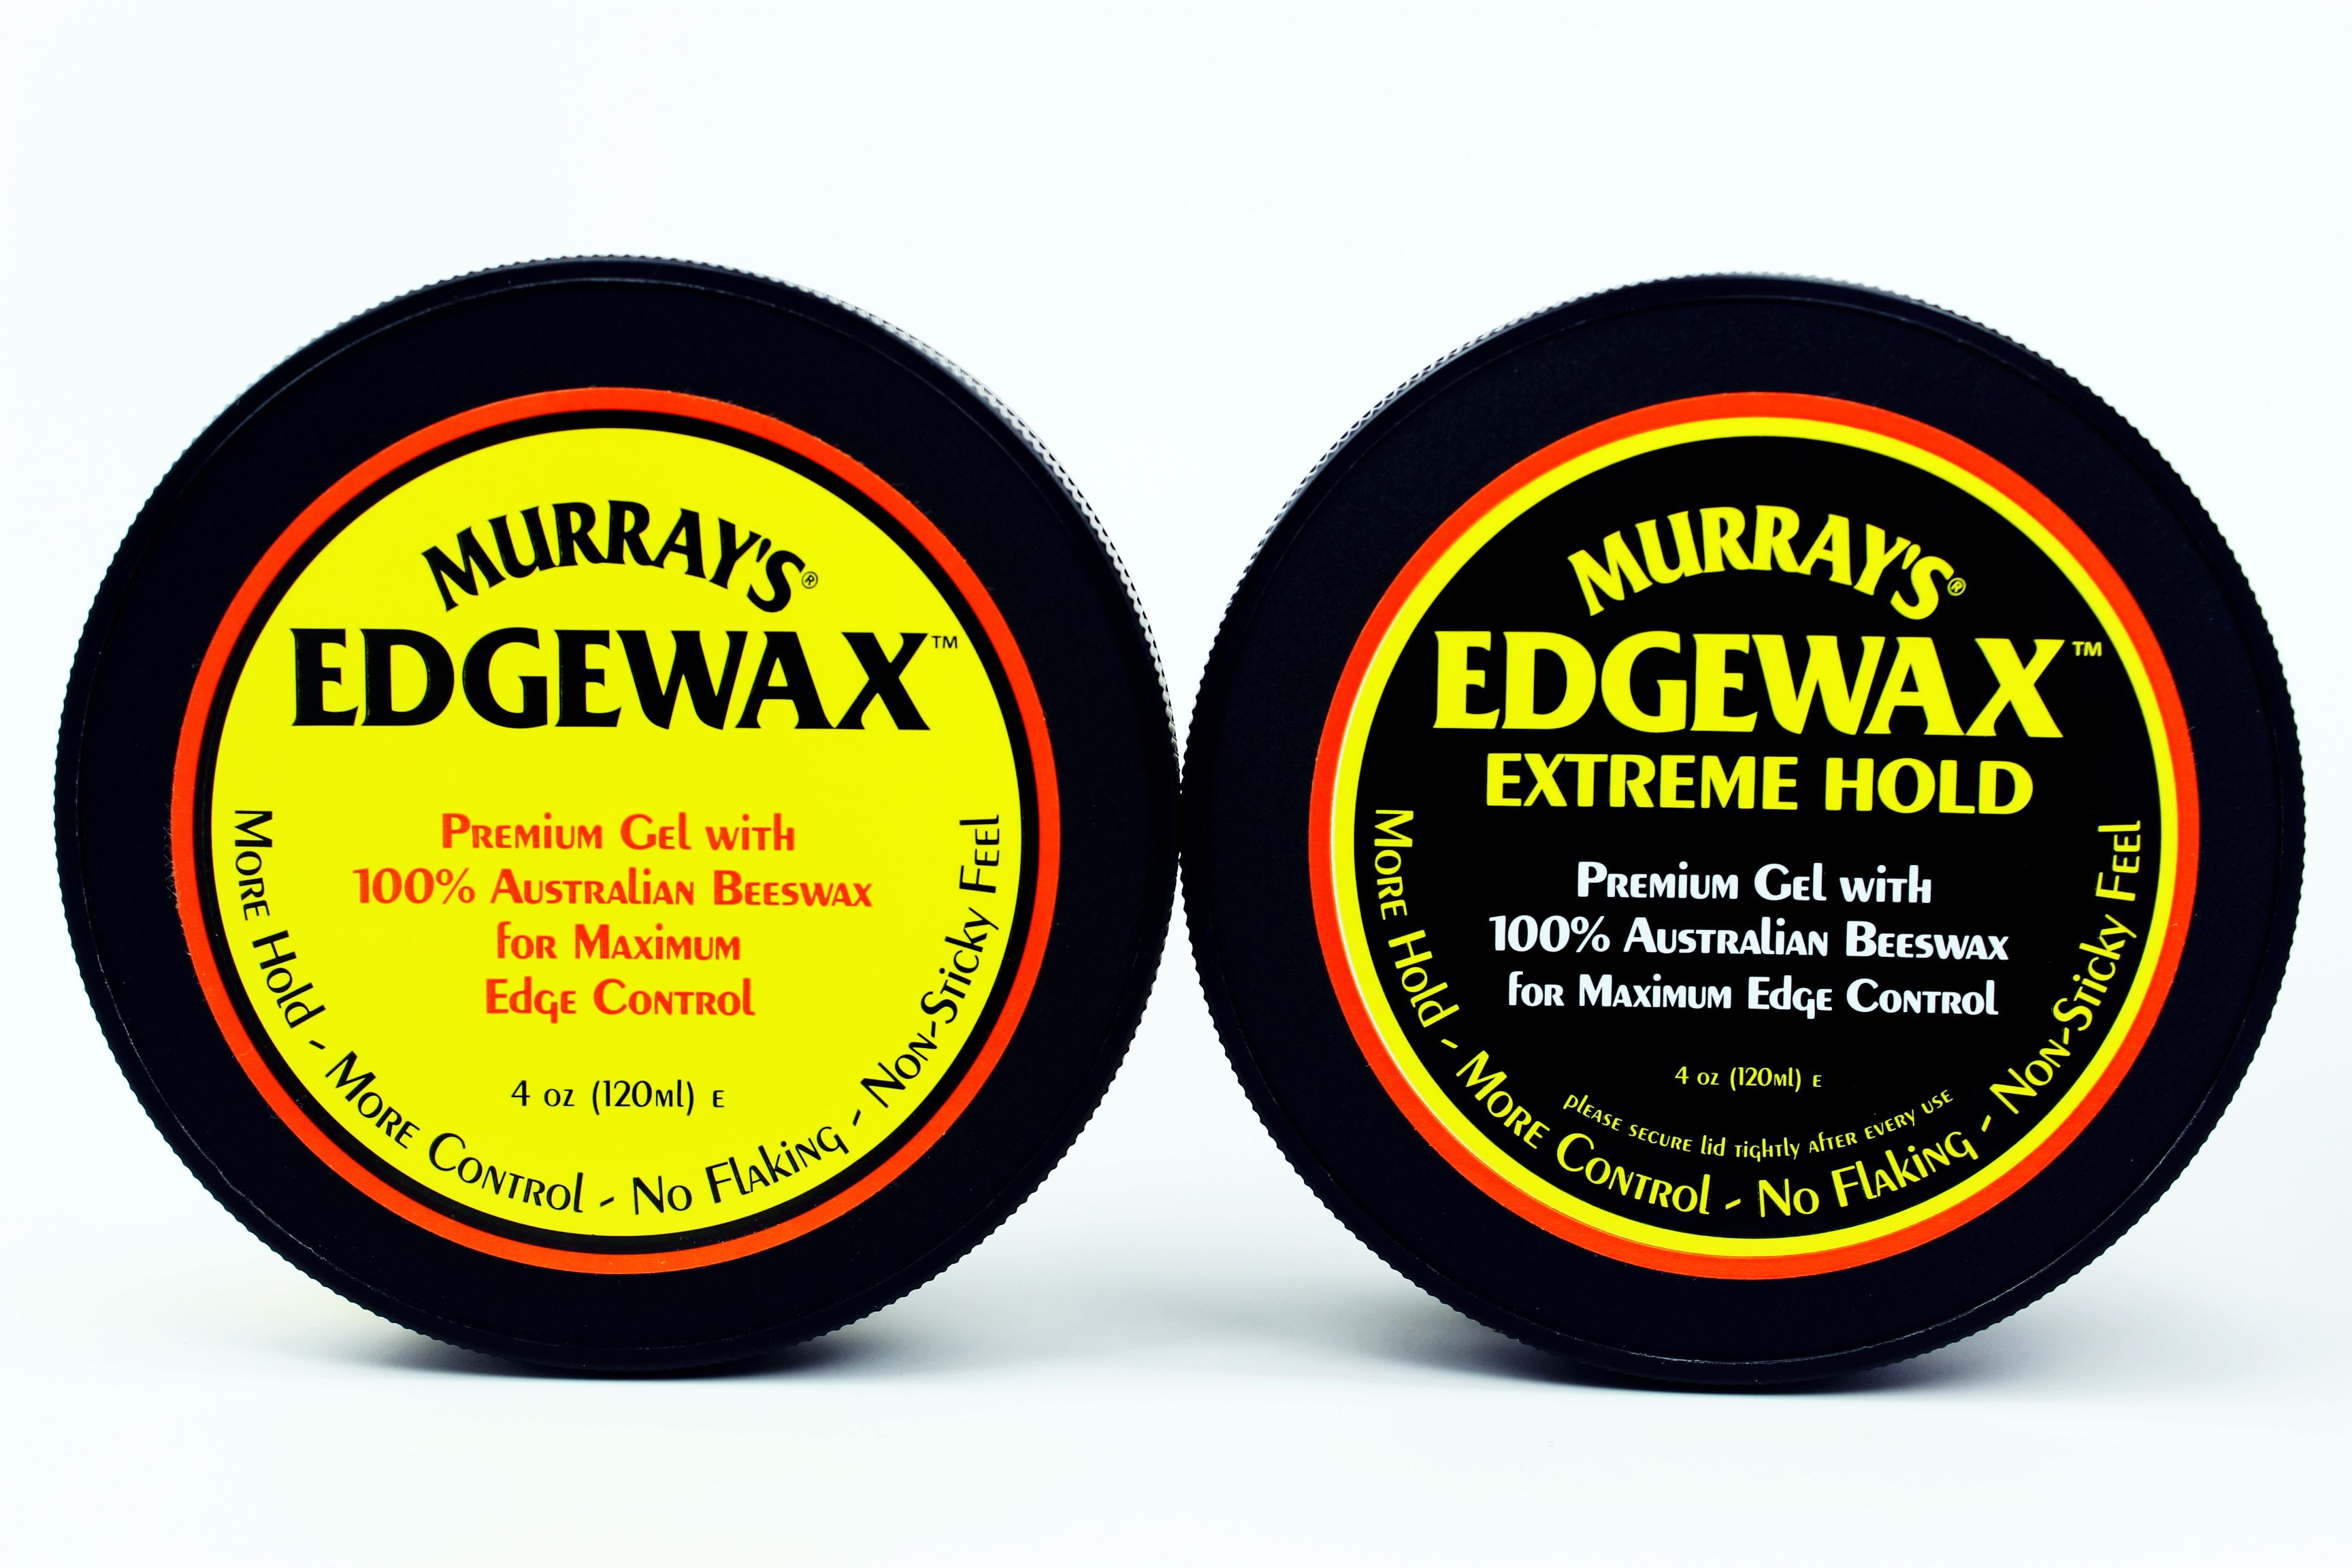 Ive Gone Through A Few Different Pomades And For Price Like This Murrays Edgewax Black Pomade Extreme Hold